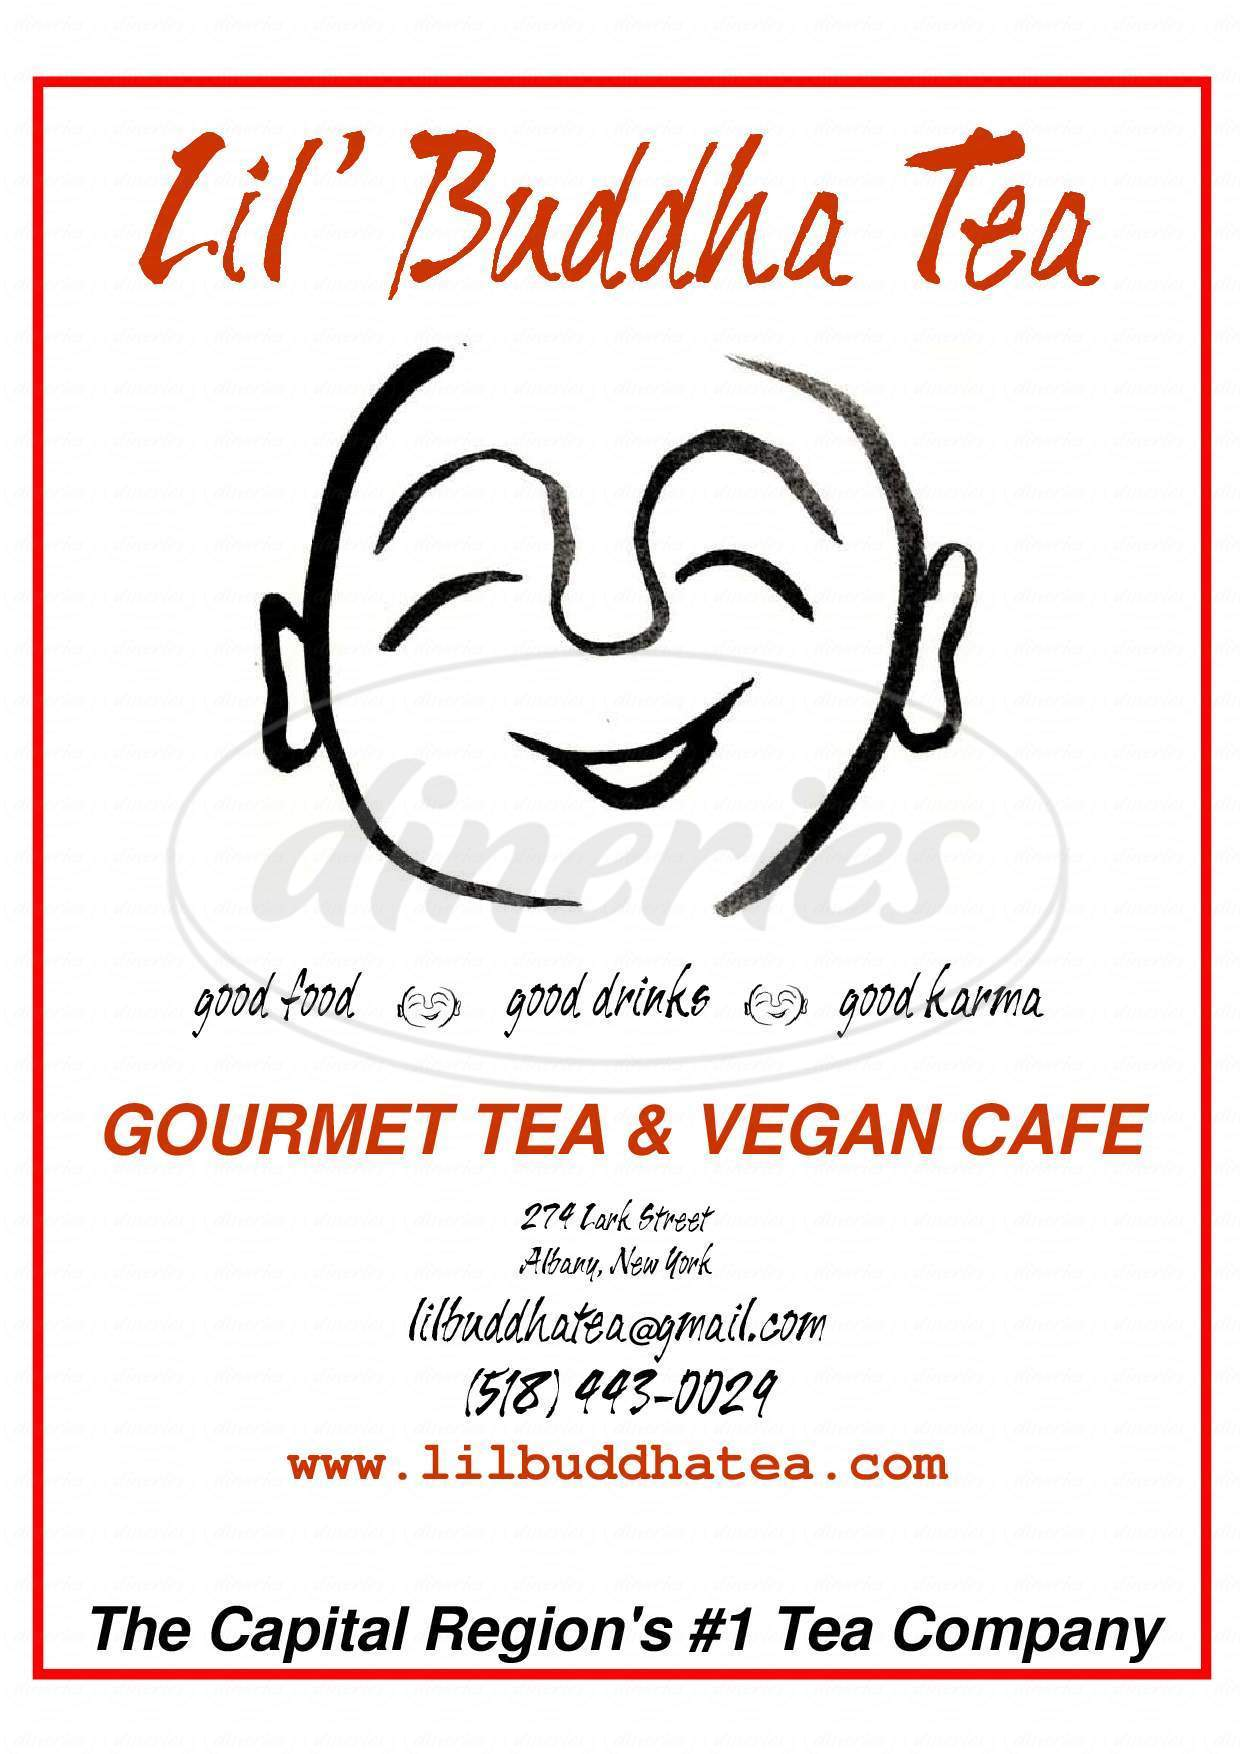 menu for Lil Buddha Tea Company & Vegan Cafe